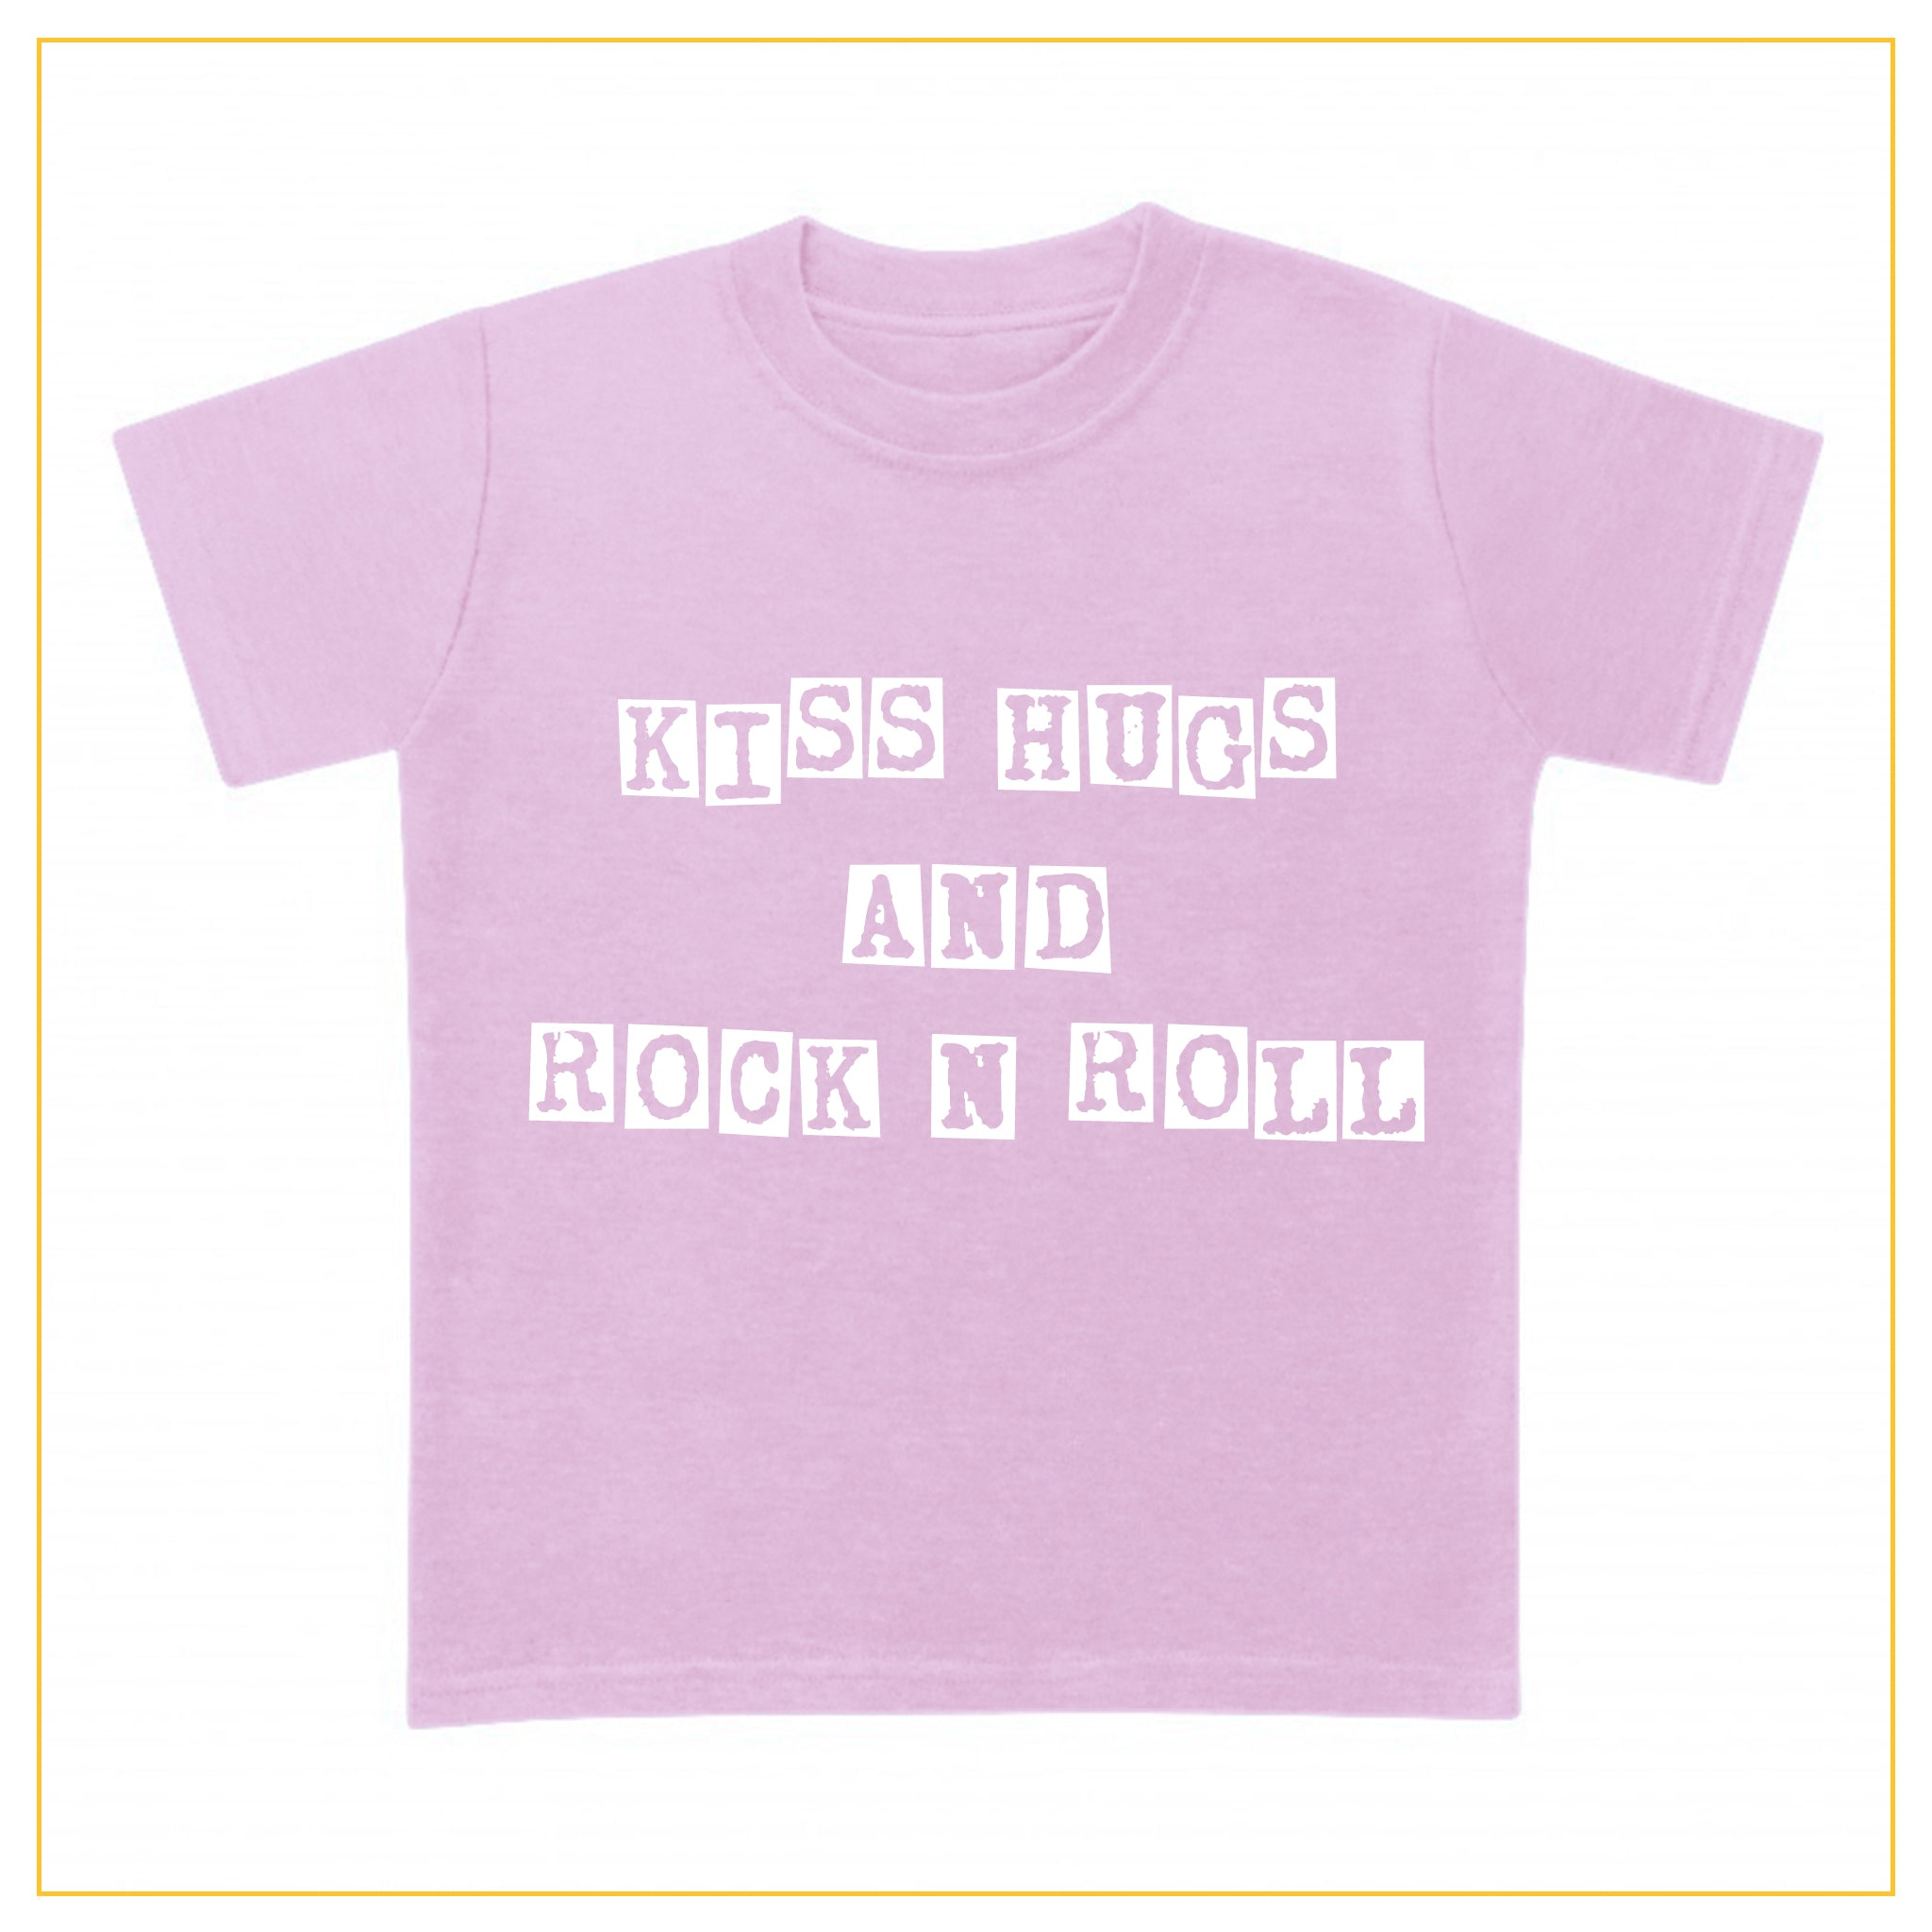 kiss hugs and rock n roll kids t-shirt in pink